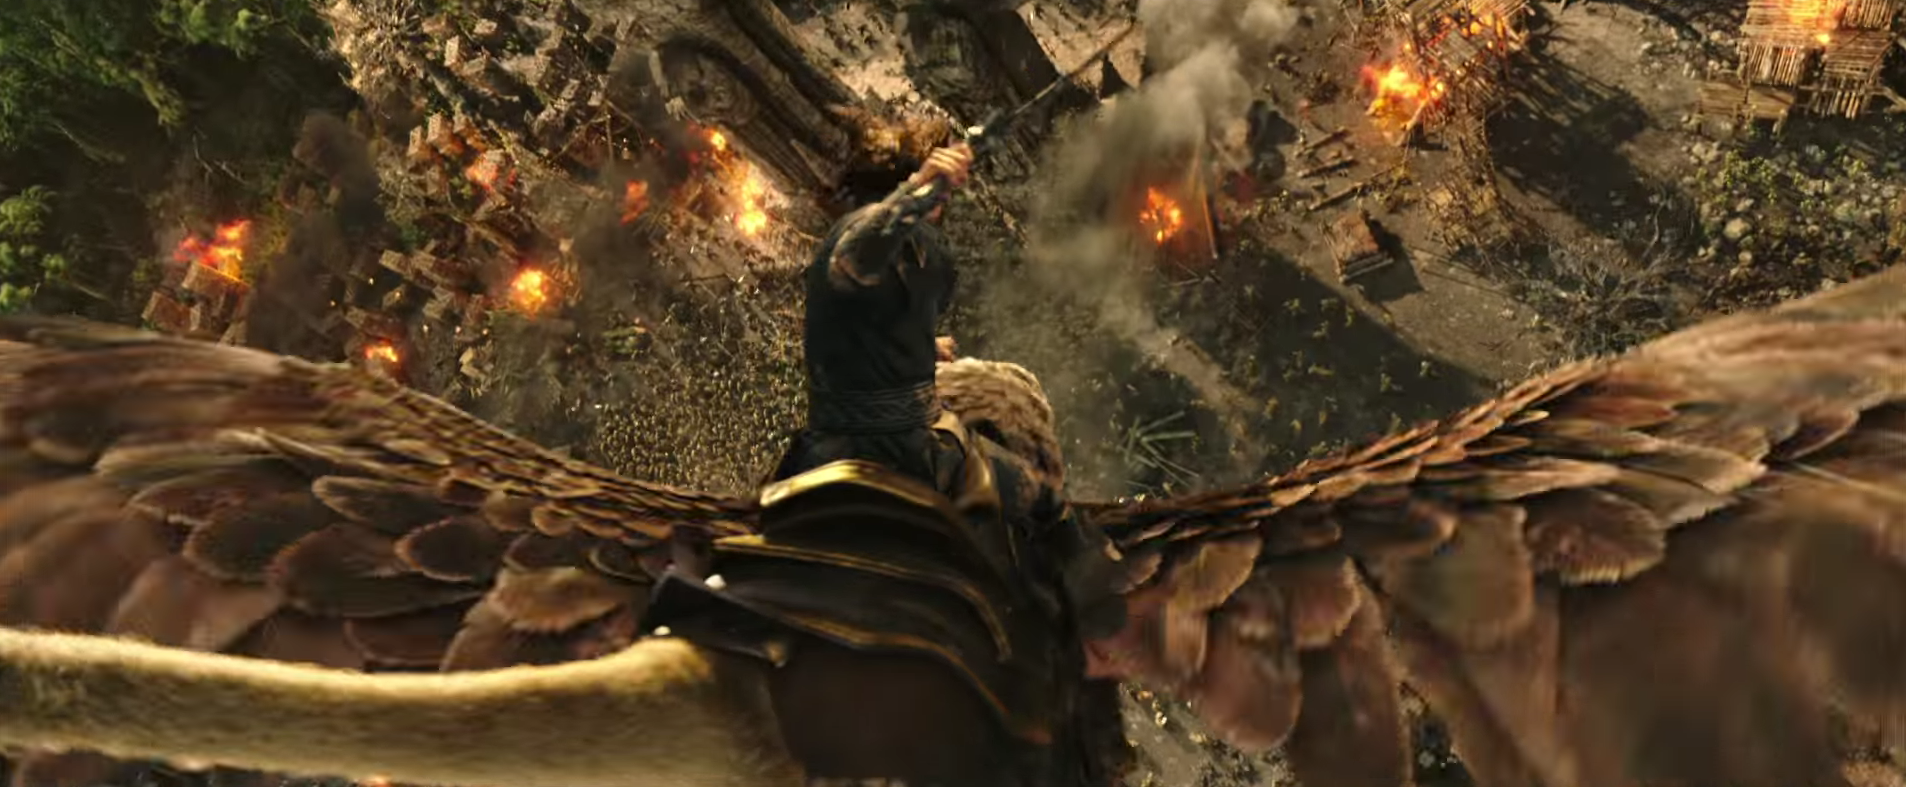 world-of-warcraft-movie .png